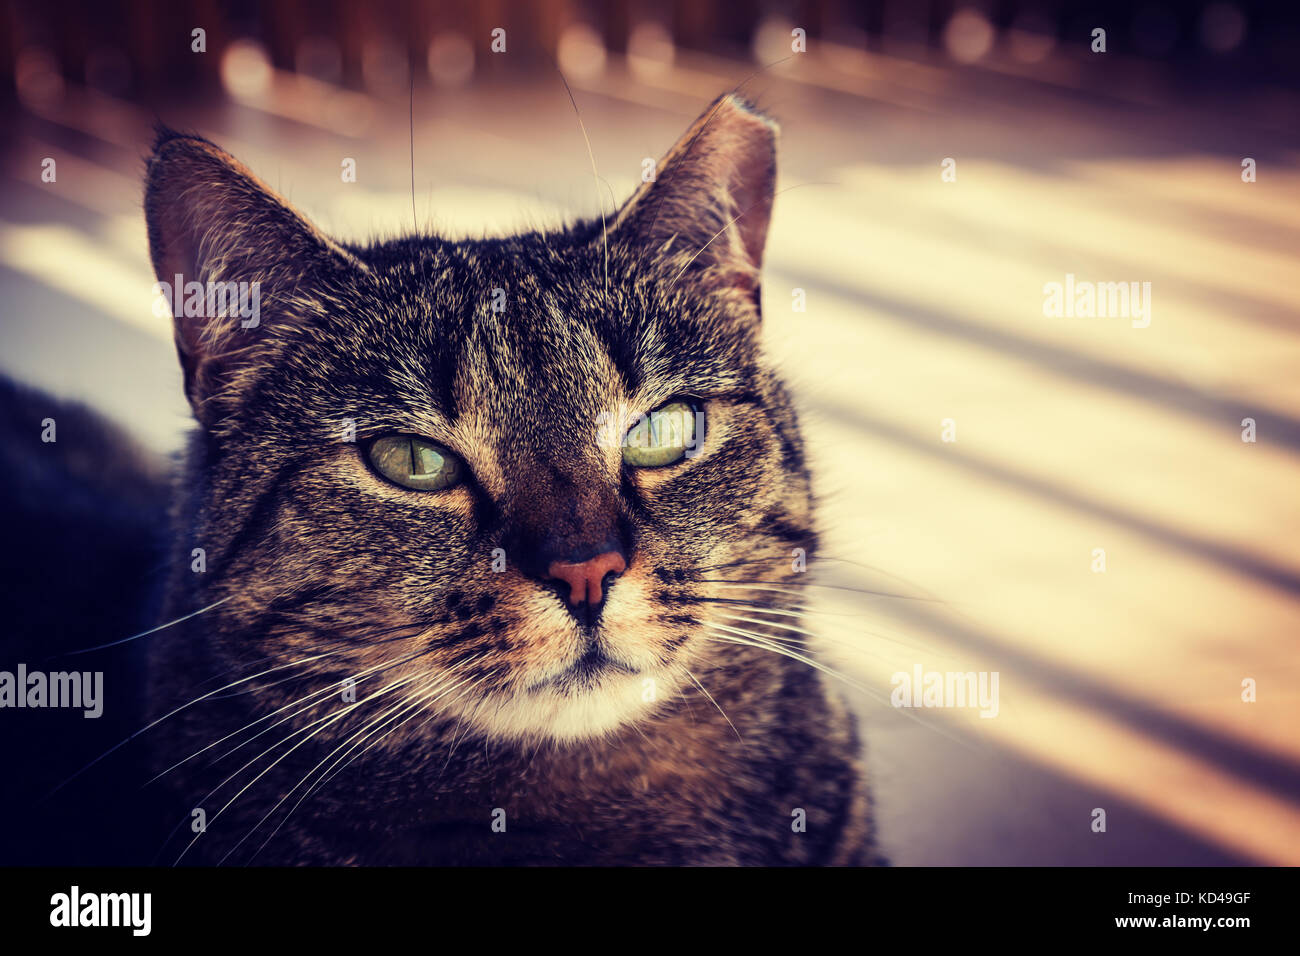 Cat lying on a balcony, posing to a photo. Vignette, high contrast photo Stock Photo